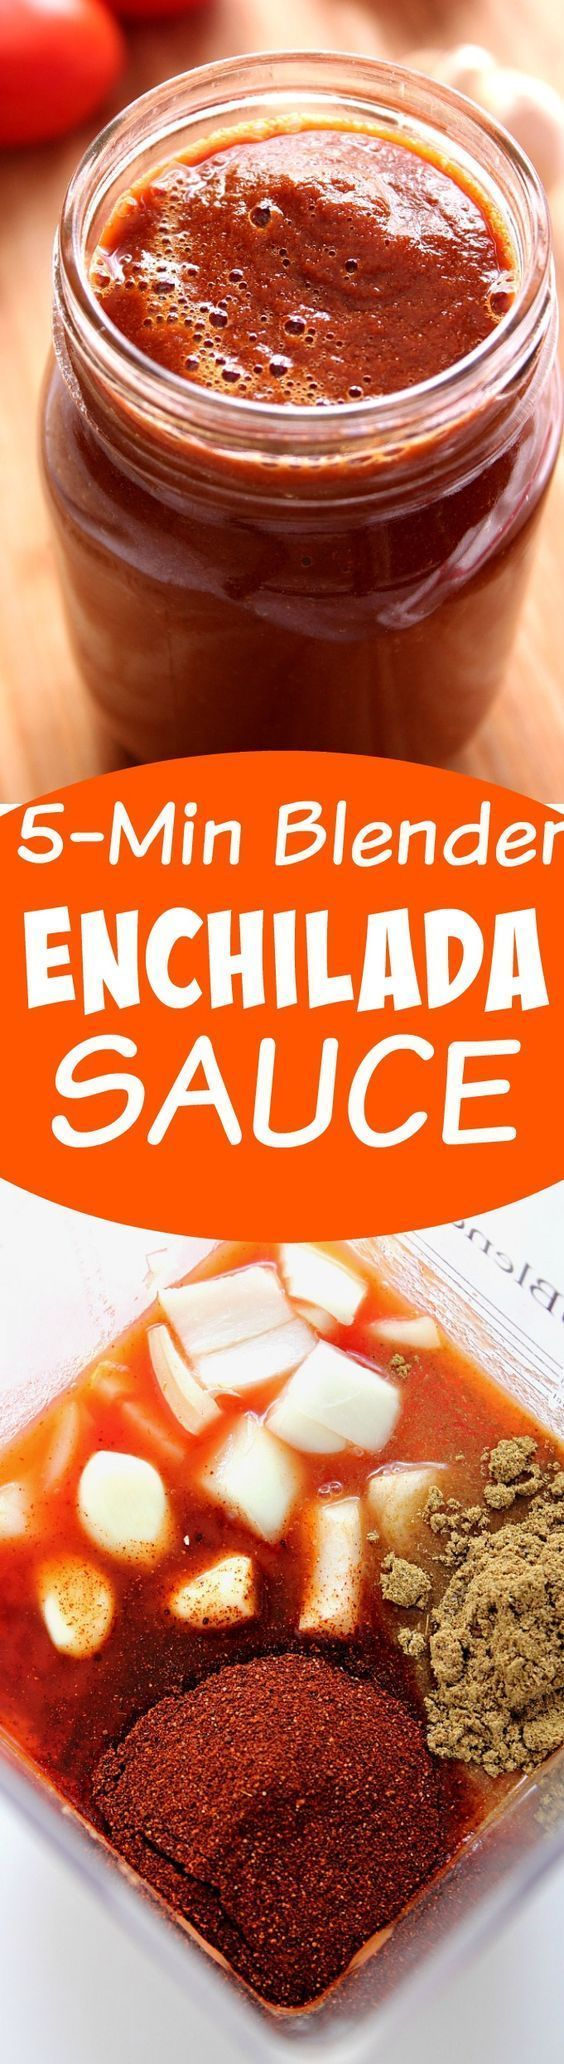 5-Minute Blender Enchilada Sauce #favoriterecipes